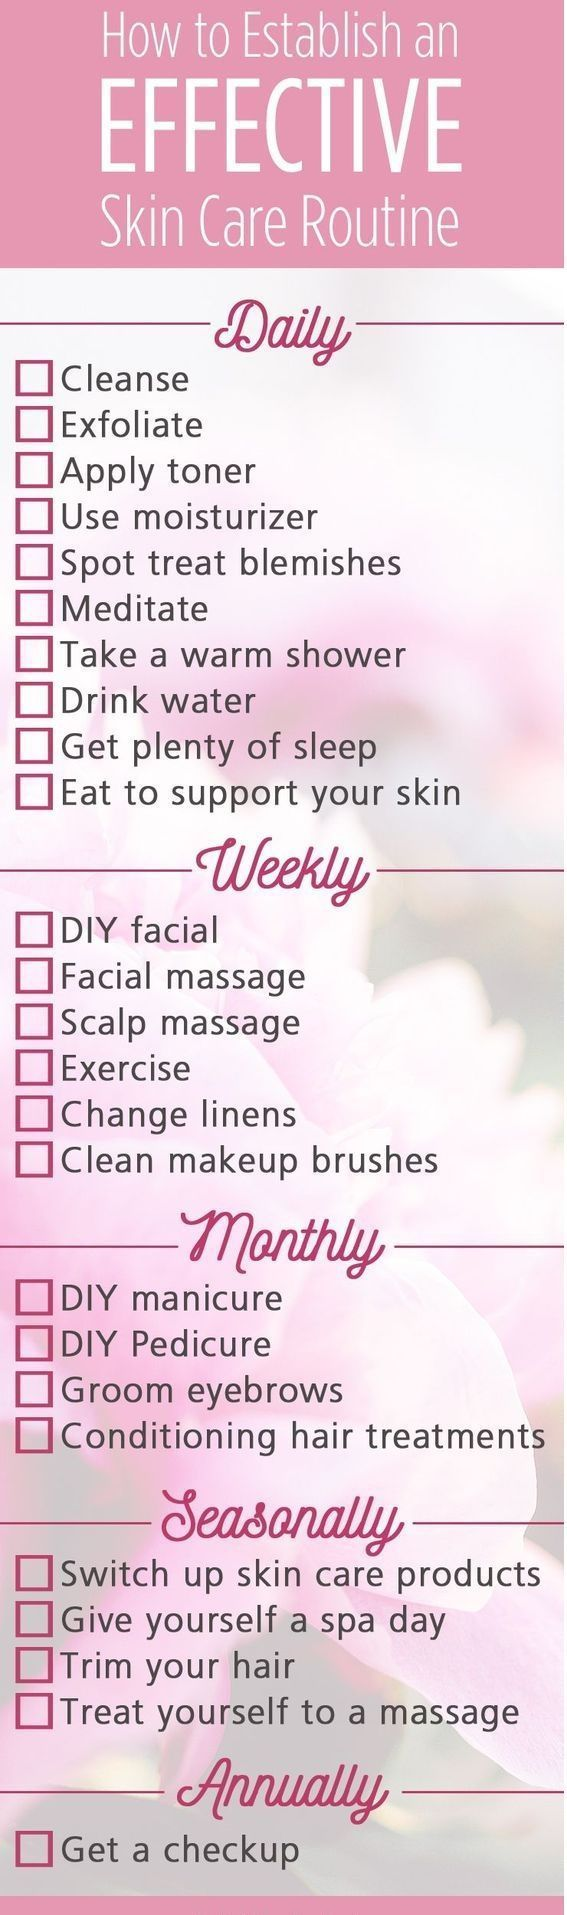 Skin Care Routine Steps Daily Skin Care Routine At Home Skin Care Routine For Acne Sk Skin Care Routine Steps Daily Skin Care Routine Best Skin Care Routine